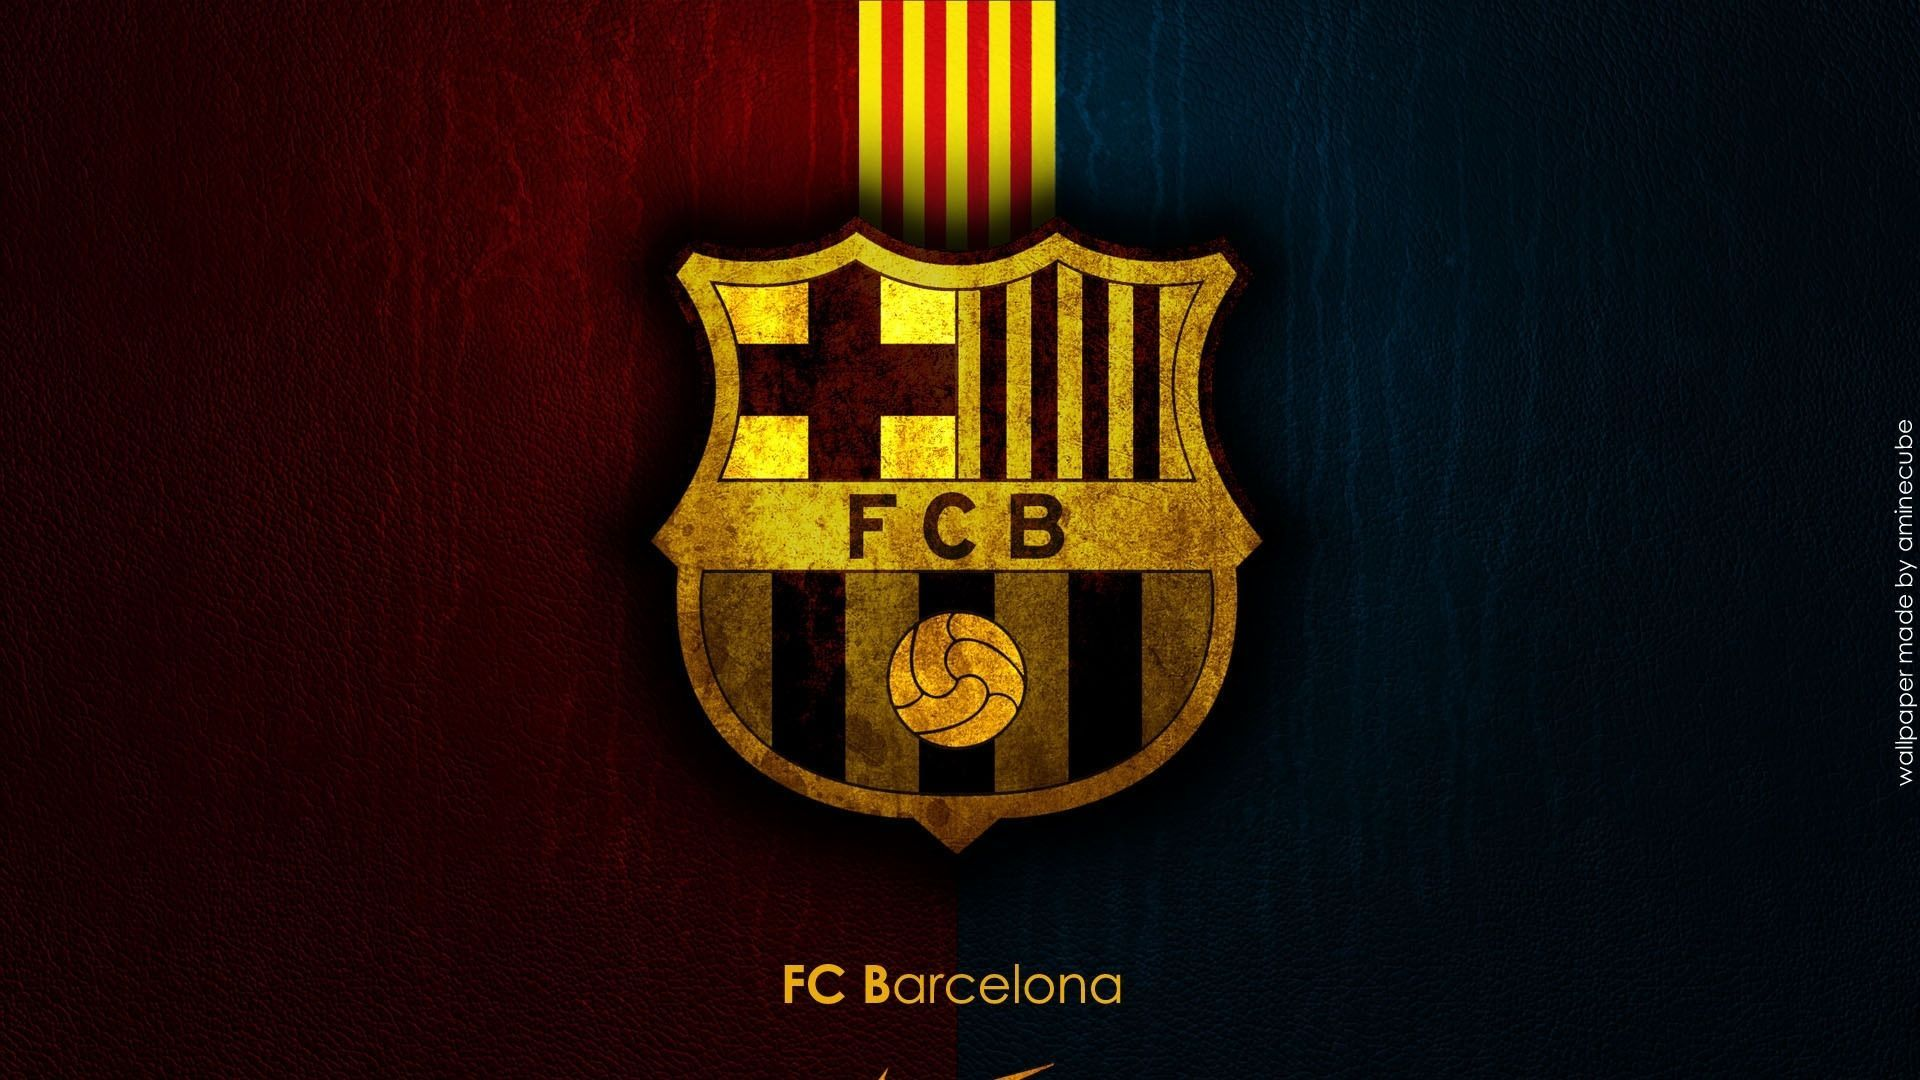 1920x1080 Wallpaper Barcelona Spain Football Club Sports